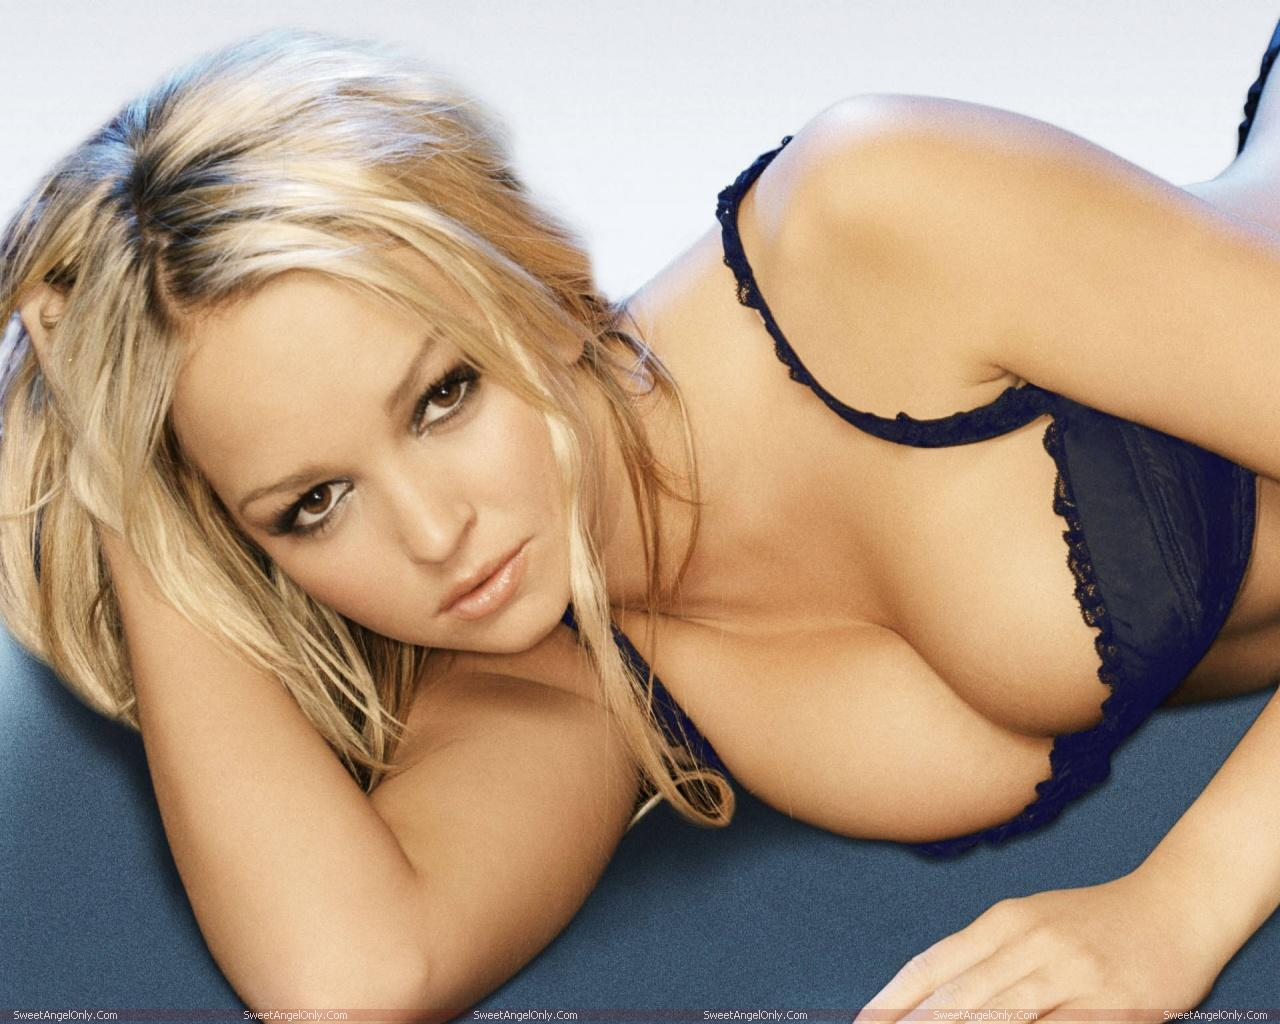 http://1.bp.blogspot.com/-D2ZBnsdu2Pc/TWjaMIWuG9I/AAAAAAAAEy0/7eiy3227_gw/s1600/actress_jennifer_ellison_hot_wallpaper_08.jpg